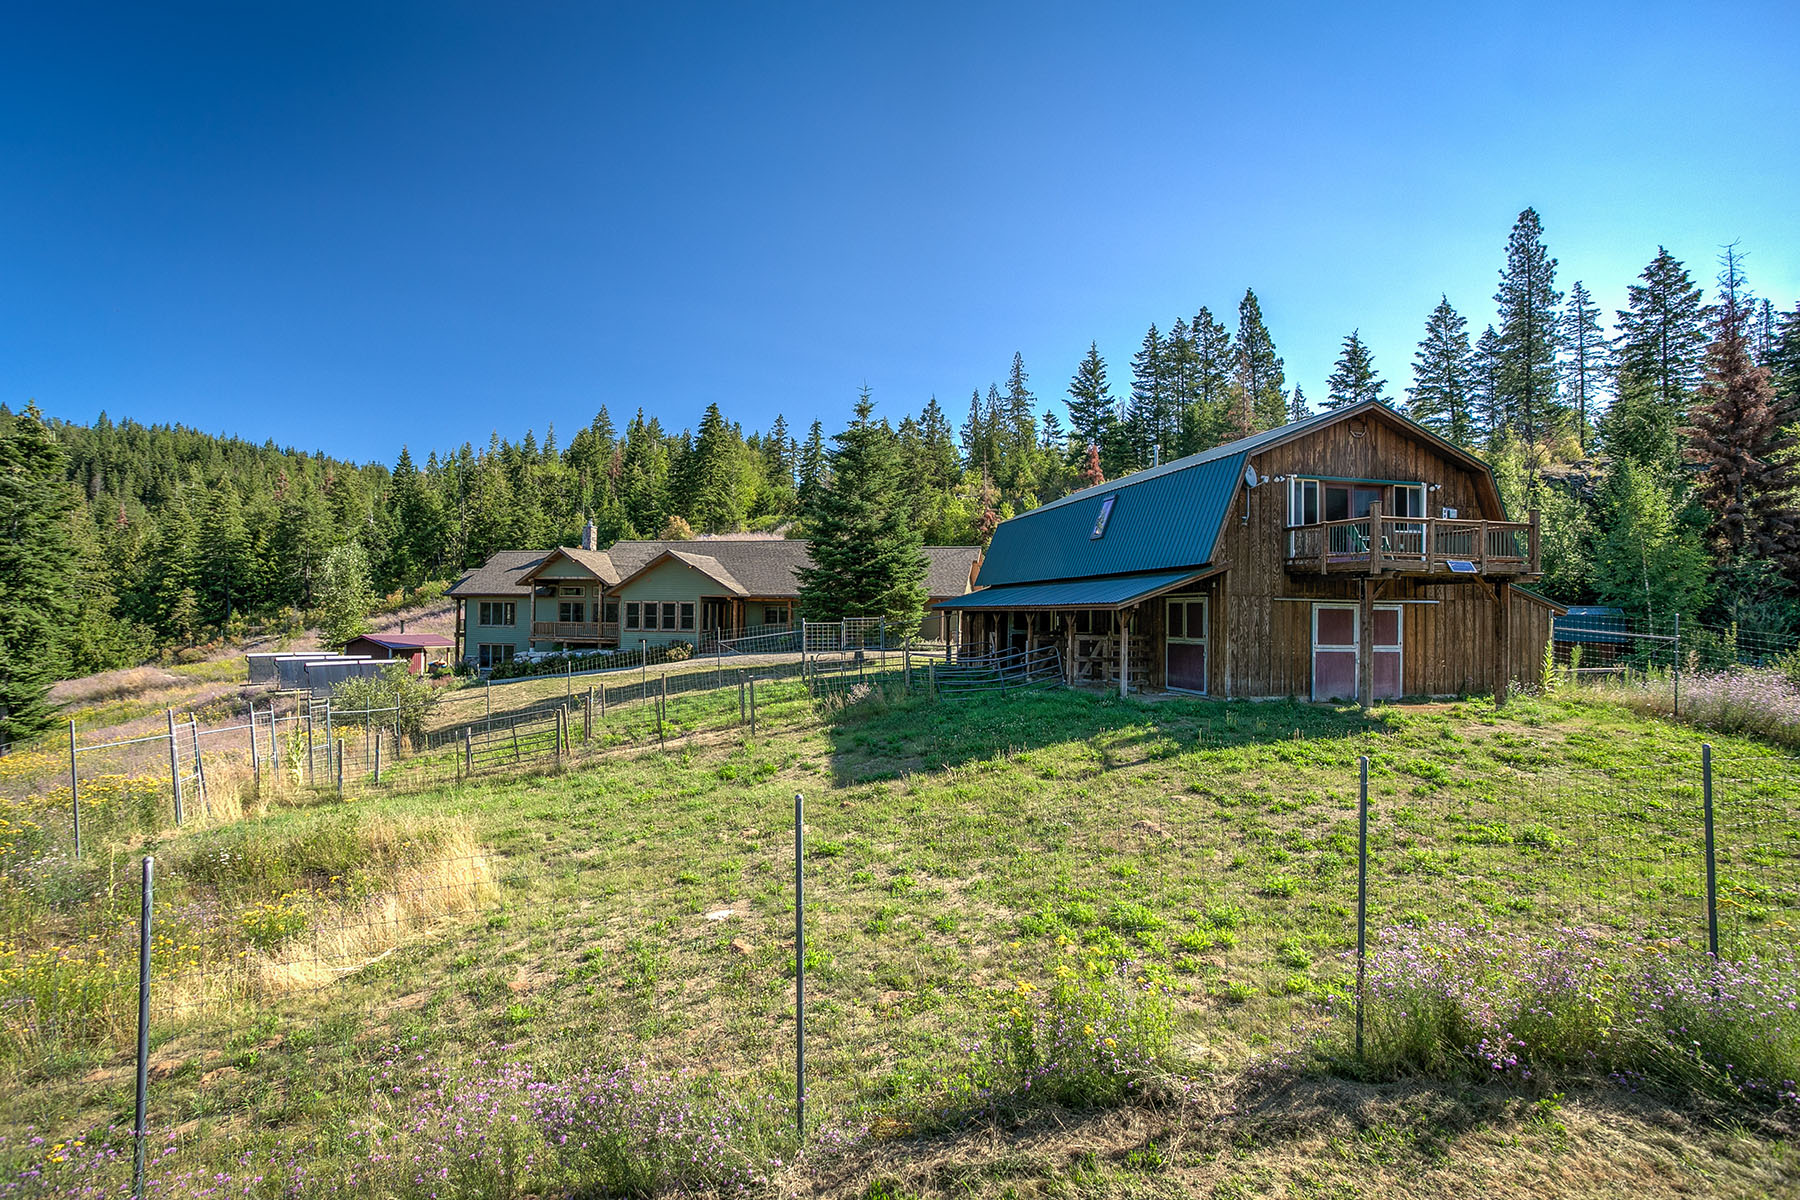 Single Family Home for Sale at 2 Homes, 3 Cabins & 1 Barn on 320 Acres 0 Trout Creek Ranch Rd Sandpoint, Idaho, 83864 United States